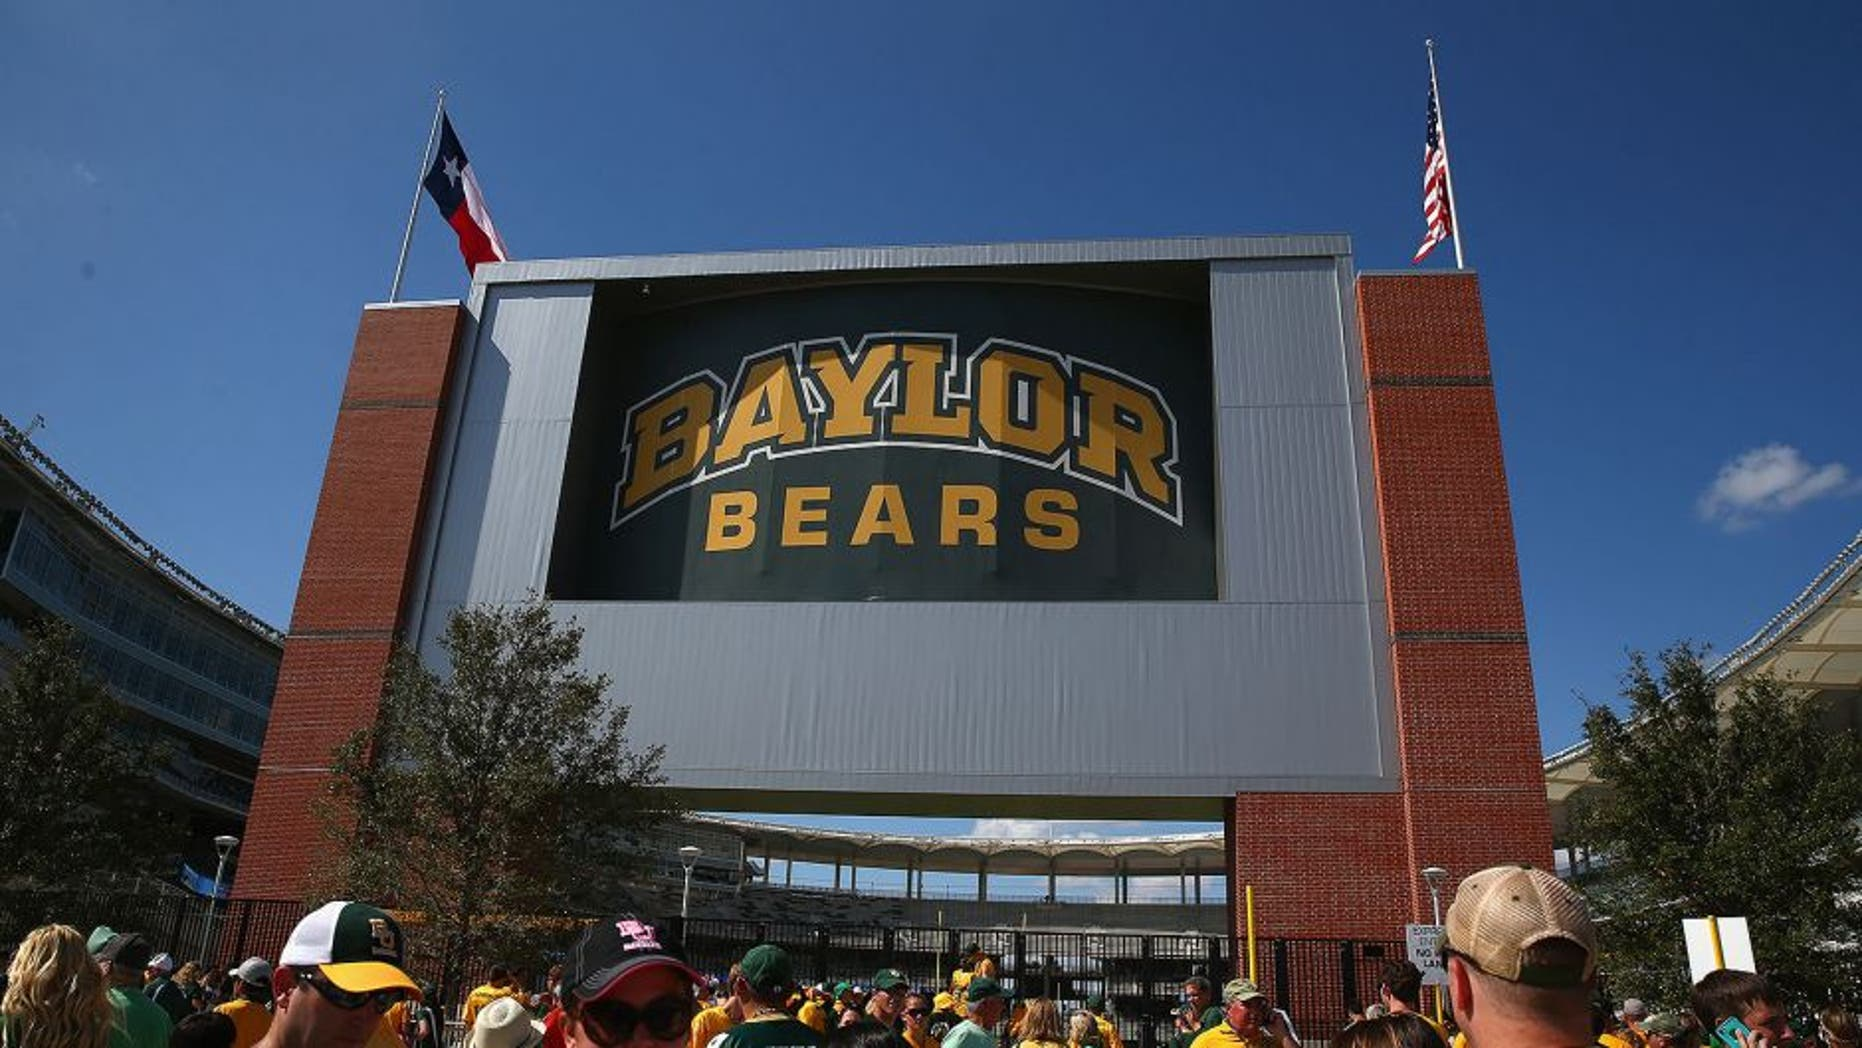 WACO, TX - AUGUST 31: A general view of McLane Stadium before a game between the Southern Methodist Mustangs and the Baylor Bears on August 31, 2014 in Waco, Texas. (Photo by Ronald Martinez/Getty Images)